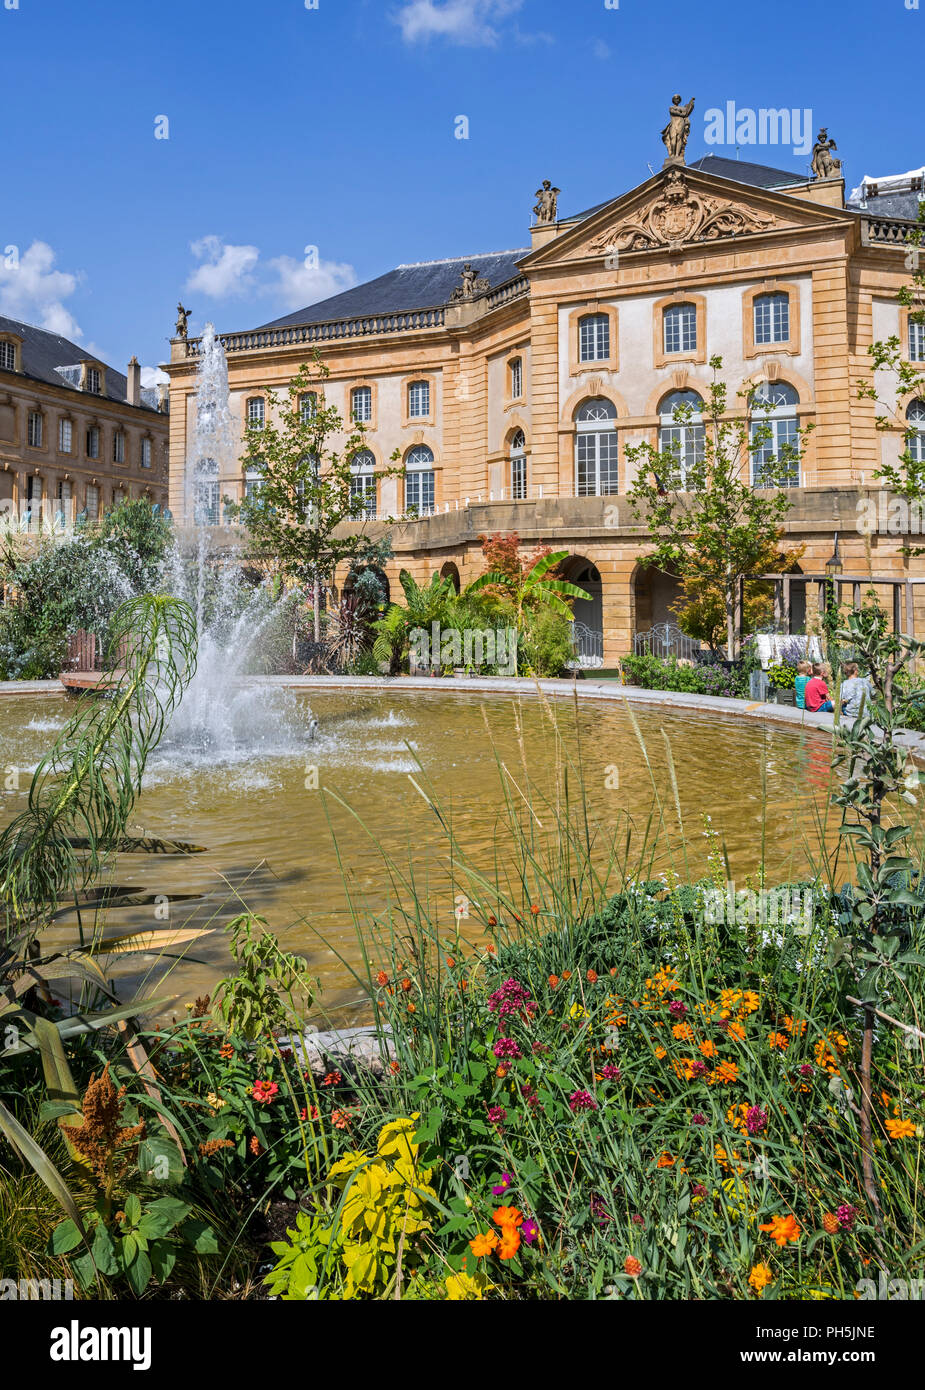 18th century Opéra-Théâtre de Metz Métropole, opera house and theatre at the Place de la Comédie / Comedy square in the city Metz, Moselle, France - Stock Image